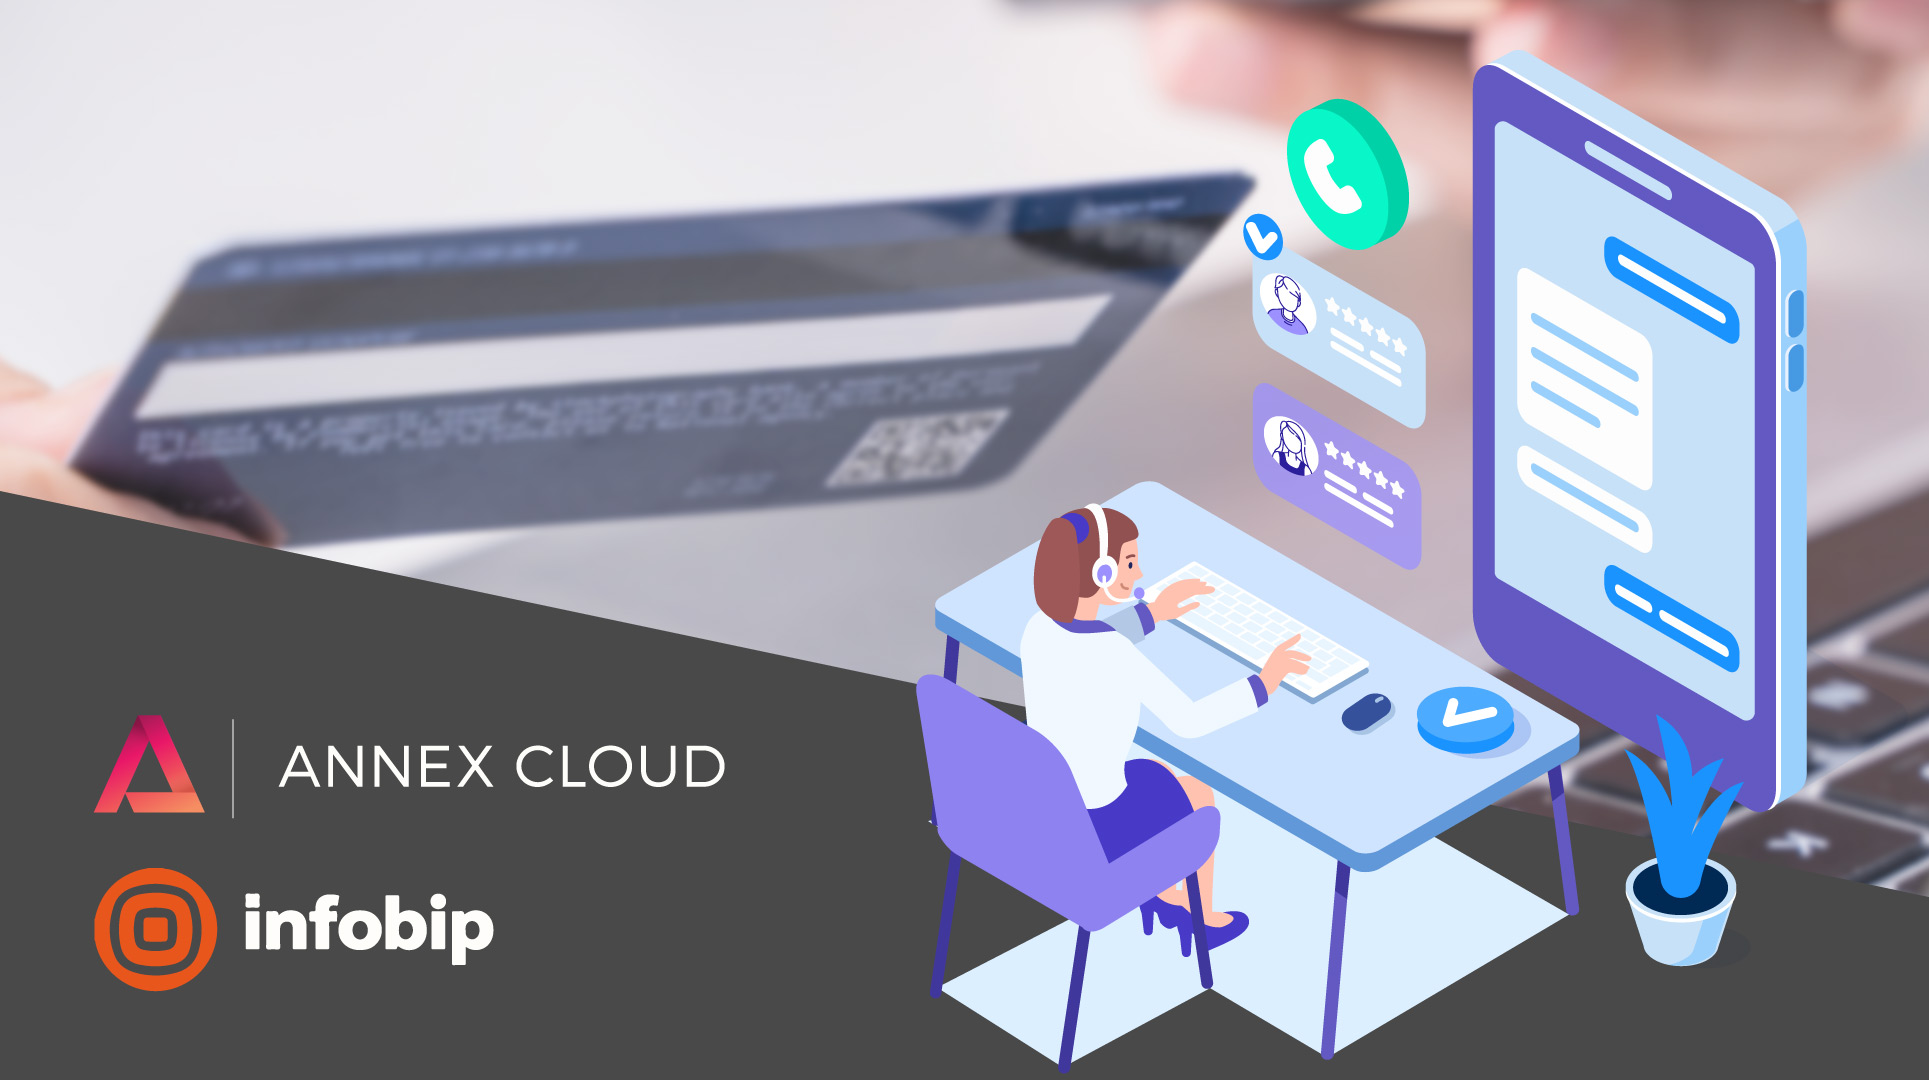 Annex Cloud, a reputed customer loyalty solutions provider, has announced its strategic partnership with Infobip